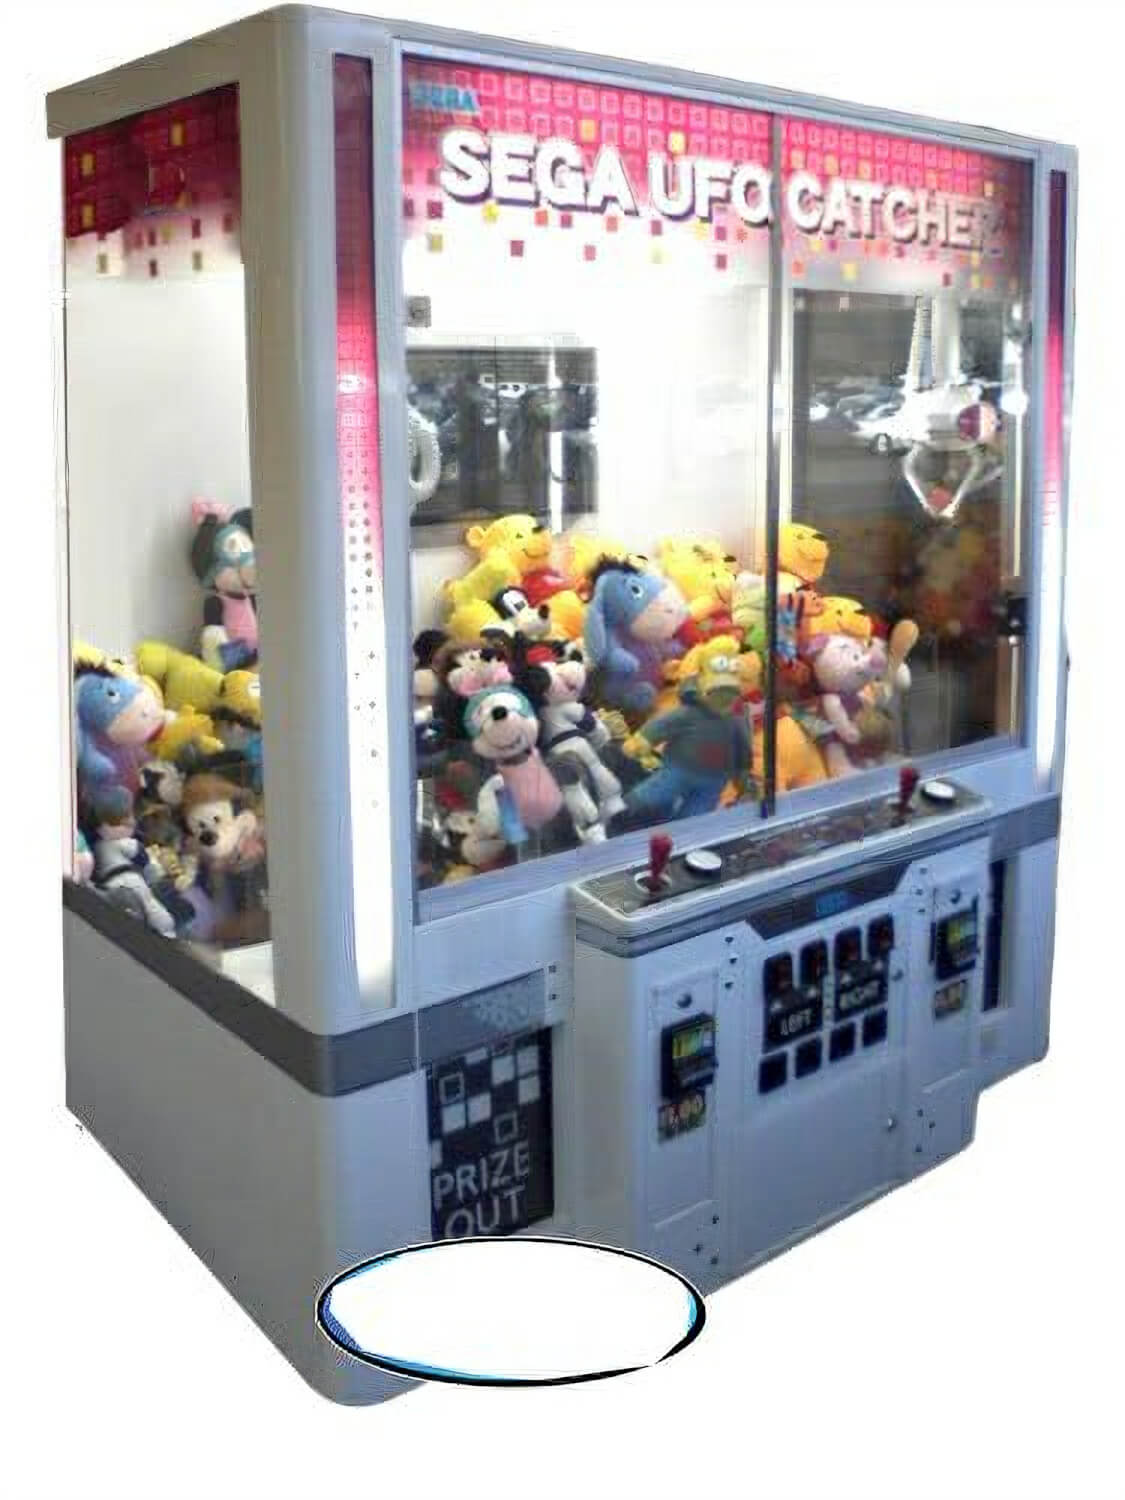 Sega Ufo Catcher Crane Machine Liberty Games